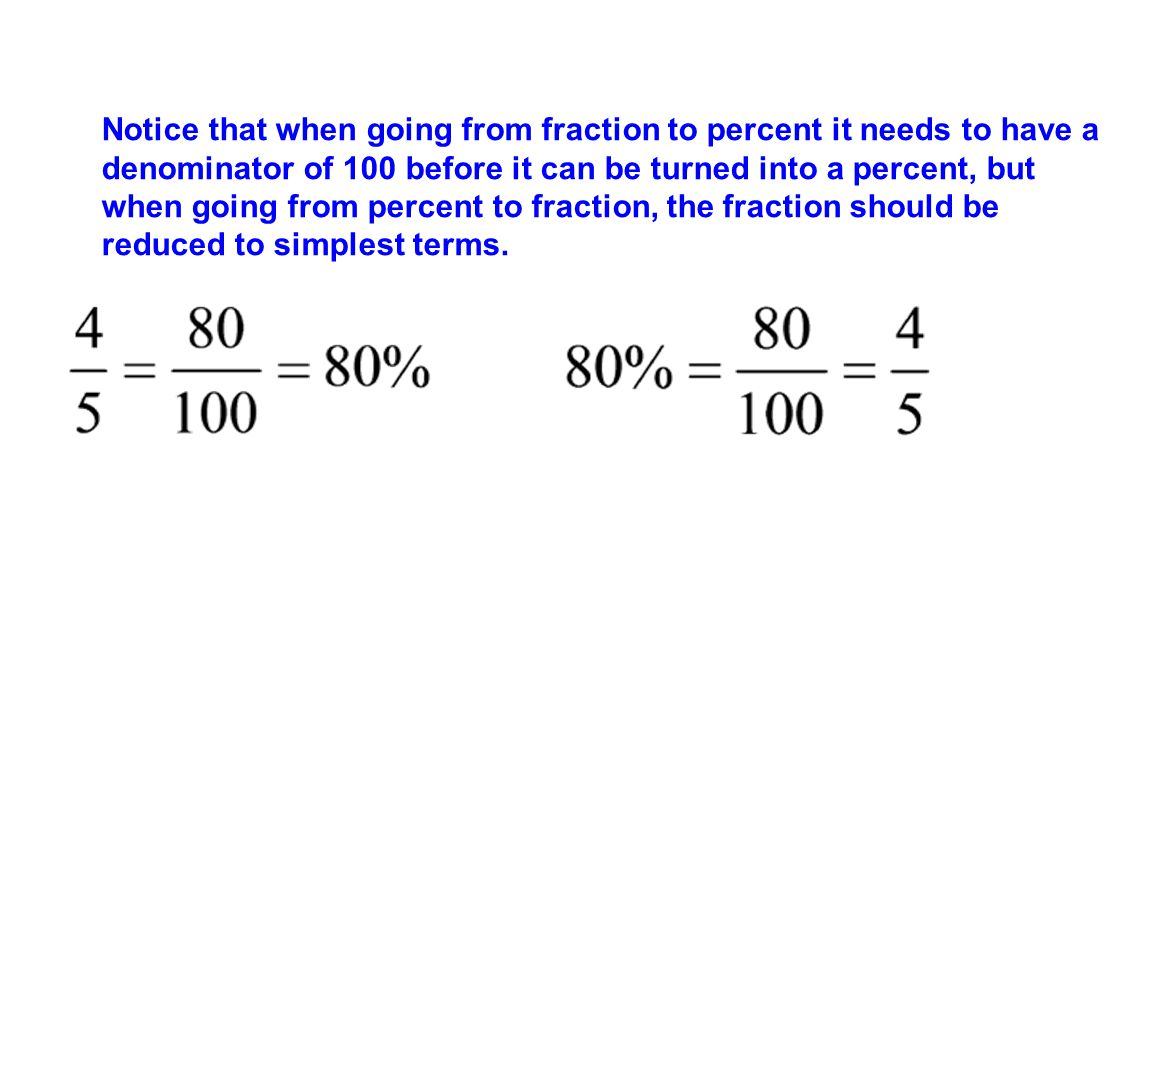 Notice that when going from fraction to percent it needs to have a denominator of 100 before it can be turned into a percent, but when going from percent to fraction, the fraction should be reduced to simplest terms.